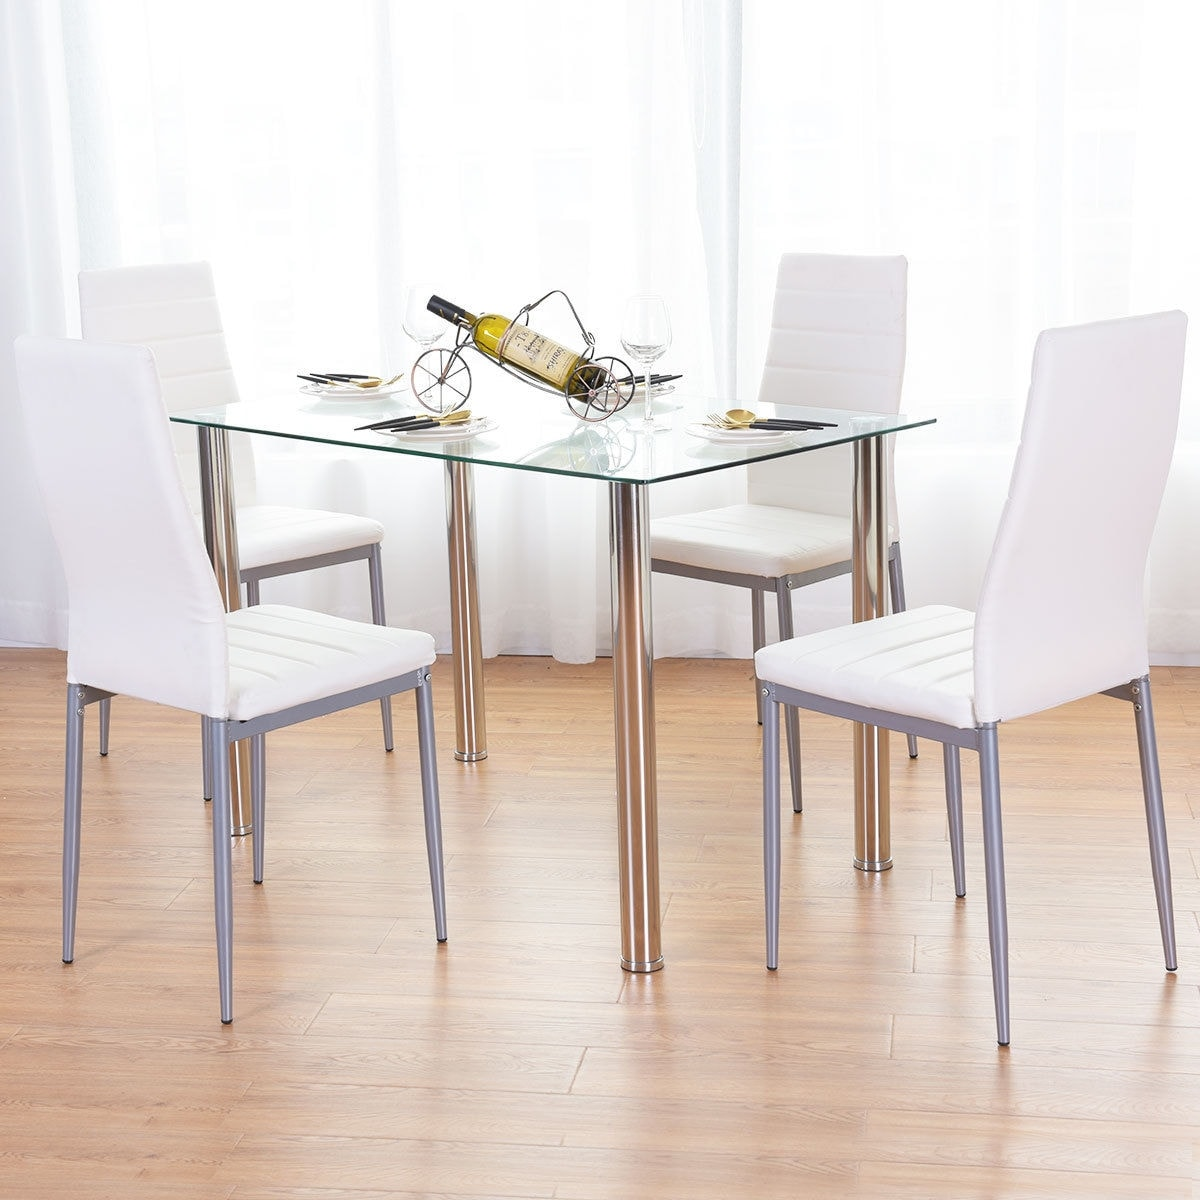 Costway 5 Piece Dining Set Table and 4 Chairs Glass Metal Kitchen ...